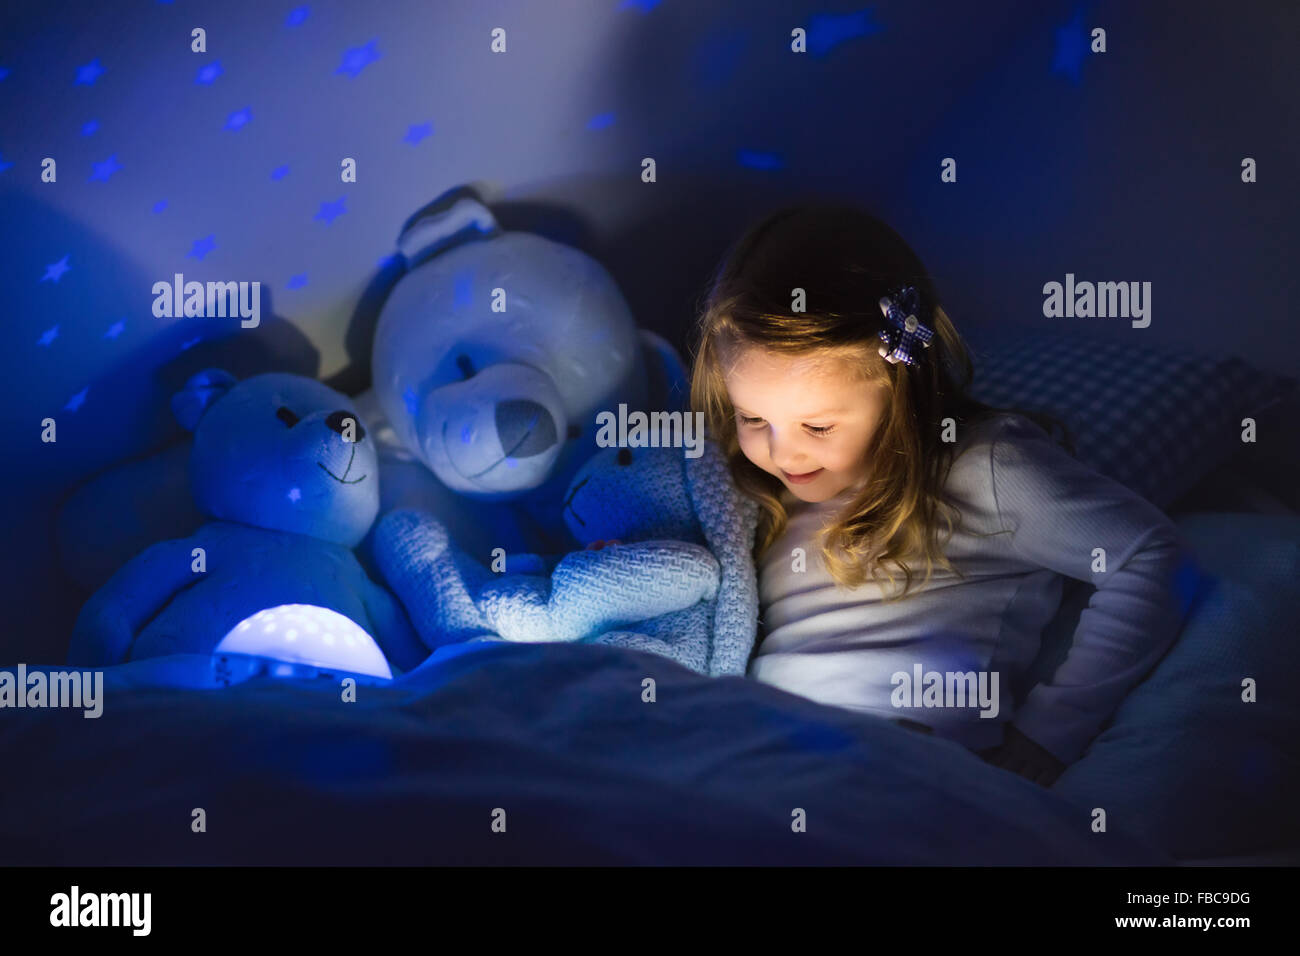 Little Girl Reading A Book In Bed. Dark Bedroom With Night Light Projecting  Stars On Room Ceiling. Kids Nursery And Bedding.